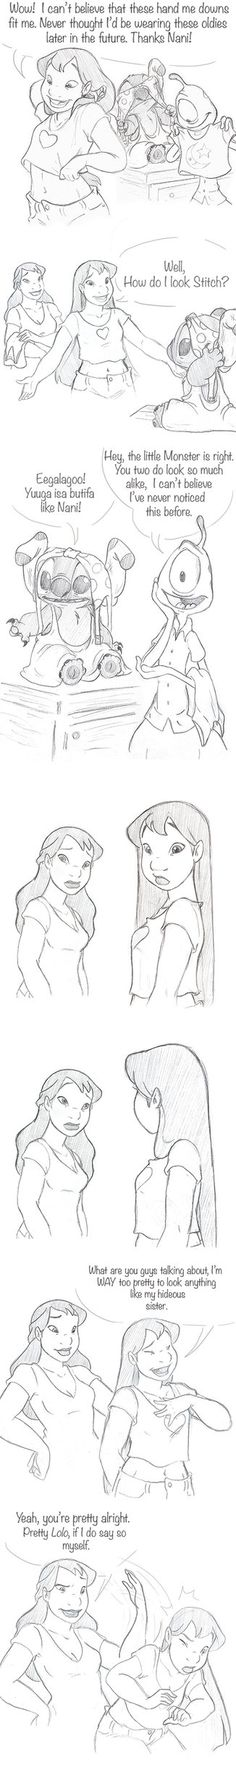 Resemblance 1/2 by jackfreak1994 on deviantART kill me i need grown up lilo like my life depended on it